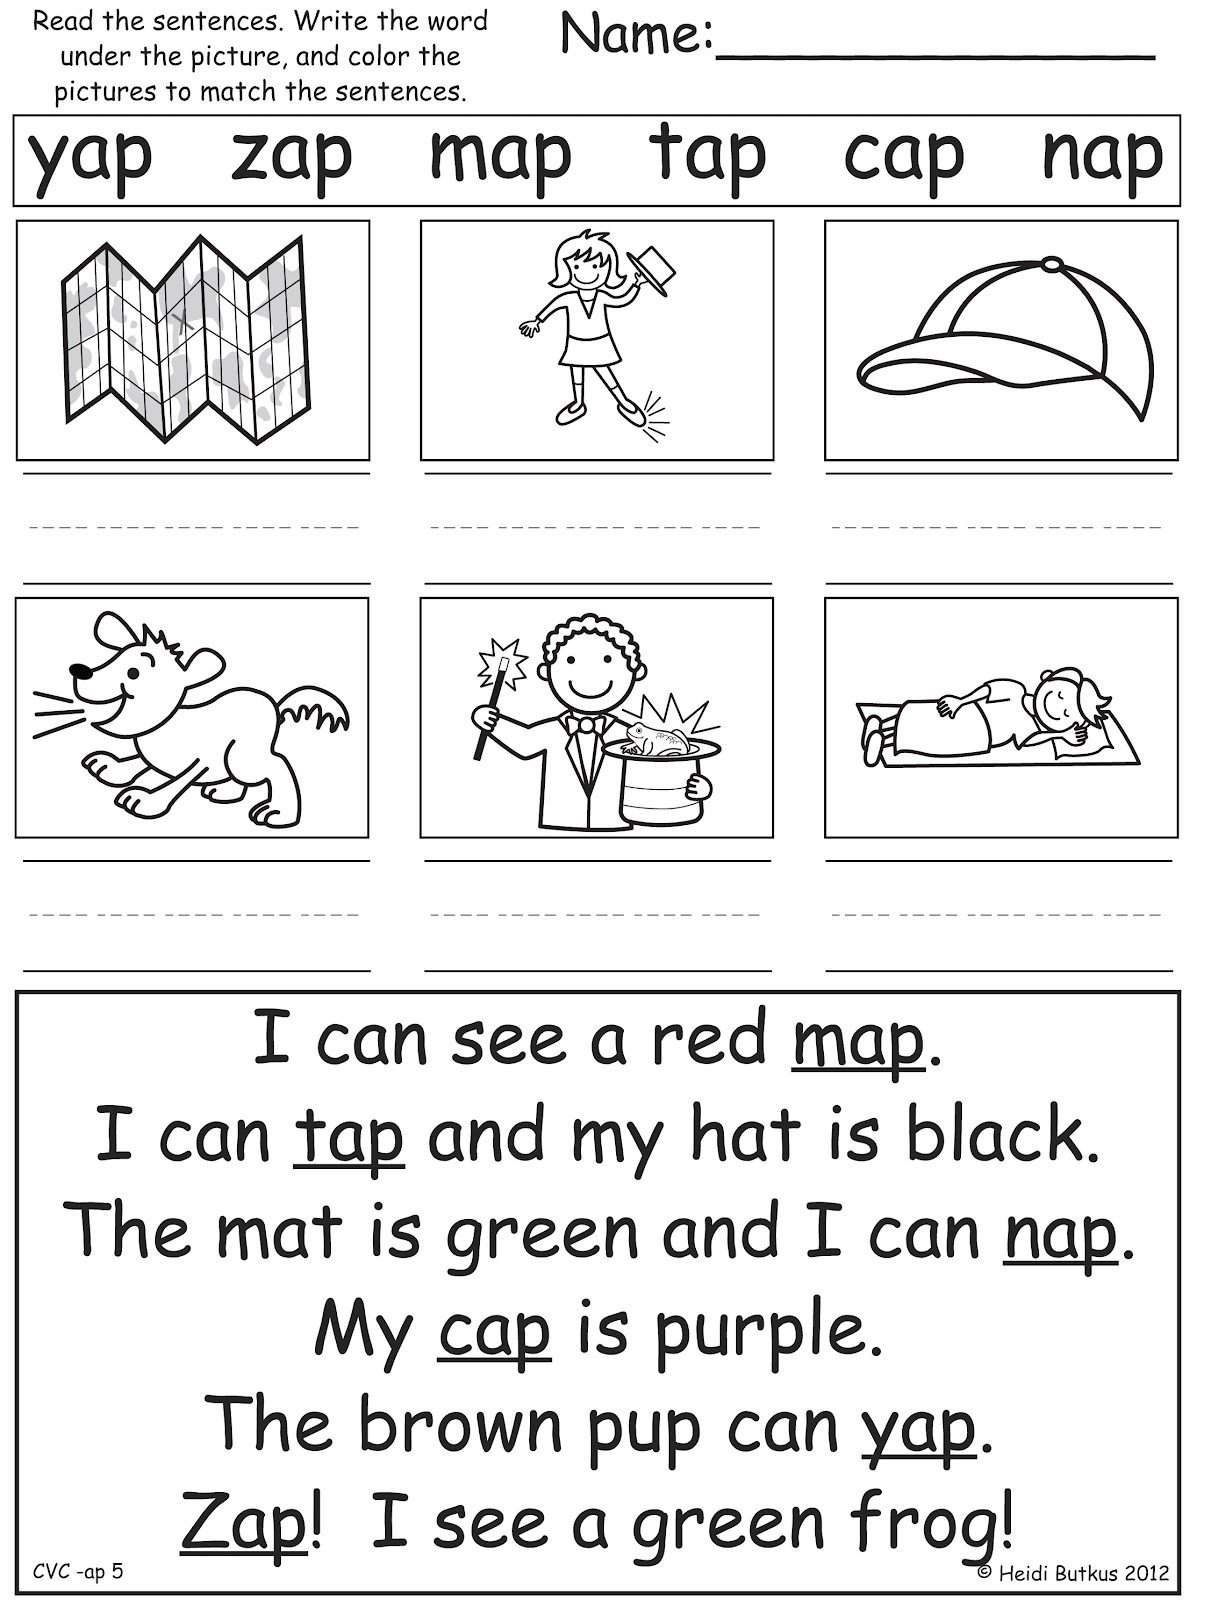 My kids take turns reading the sentences aloud on the fifth worksheet